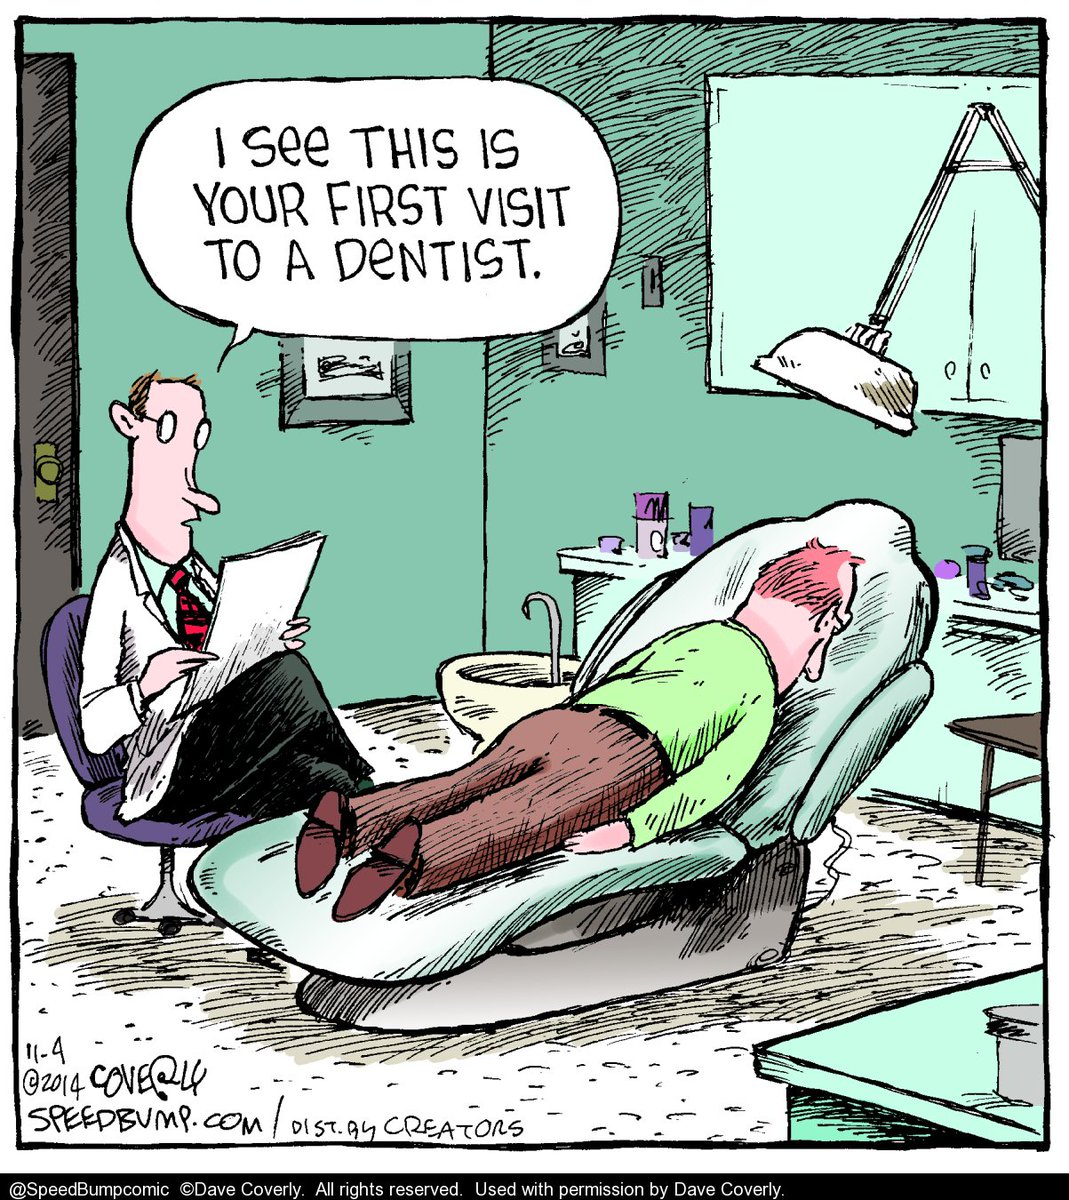 Putting a good face on itBy @speedbumpcomic #Dentist #DentistAppointment #DentalAppointment#DentalCartoons